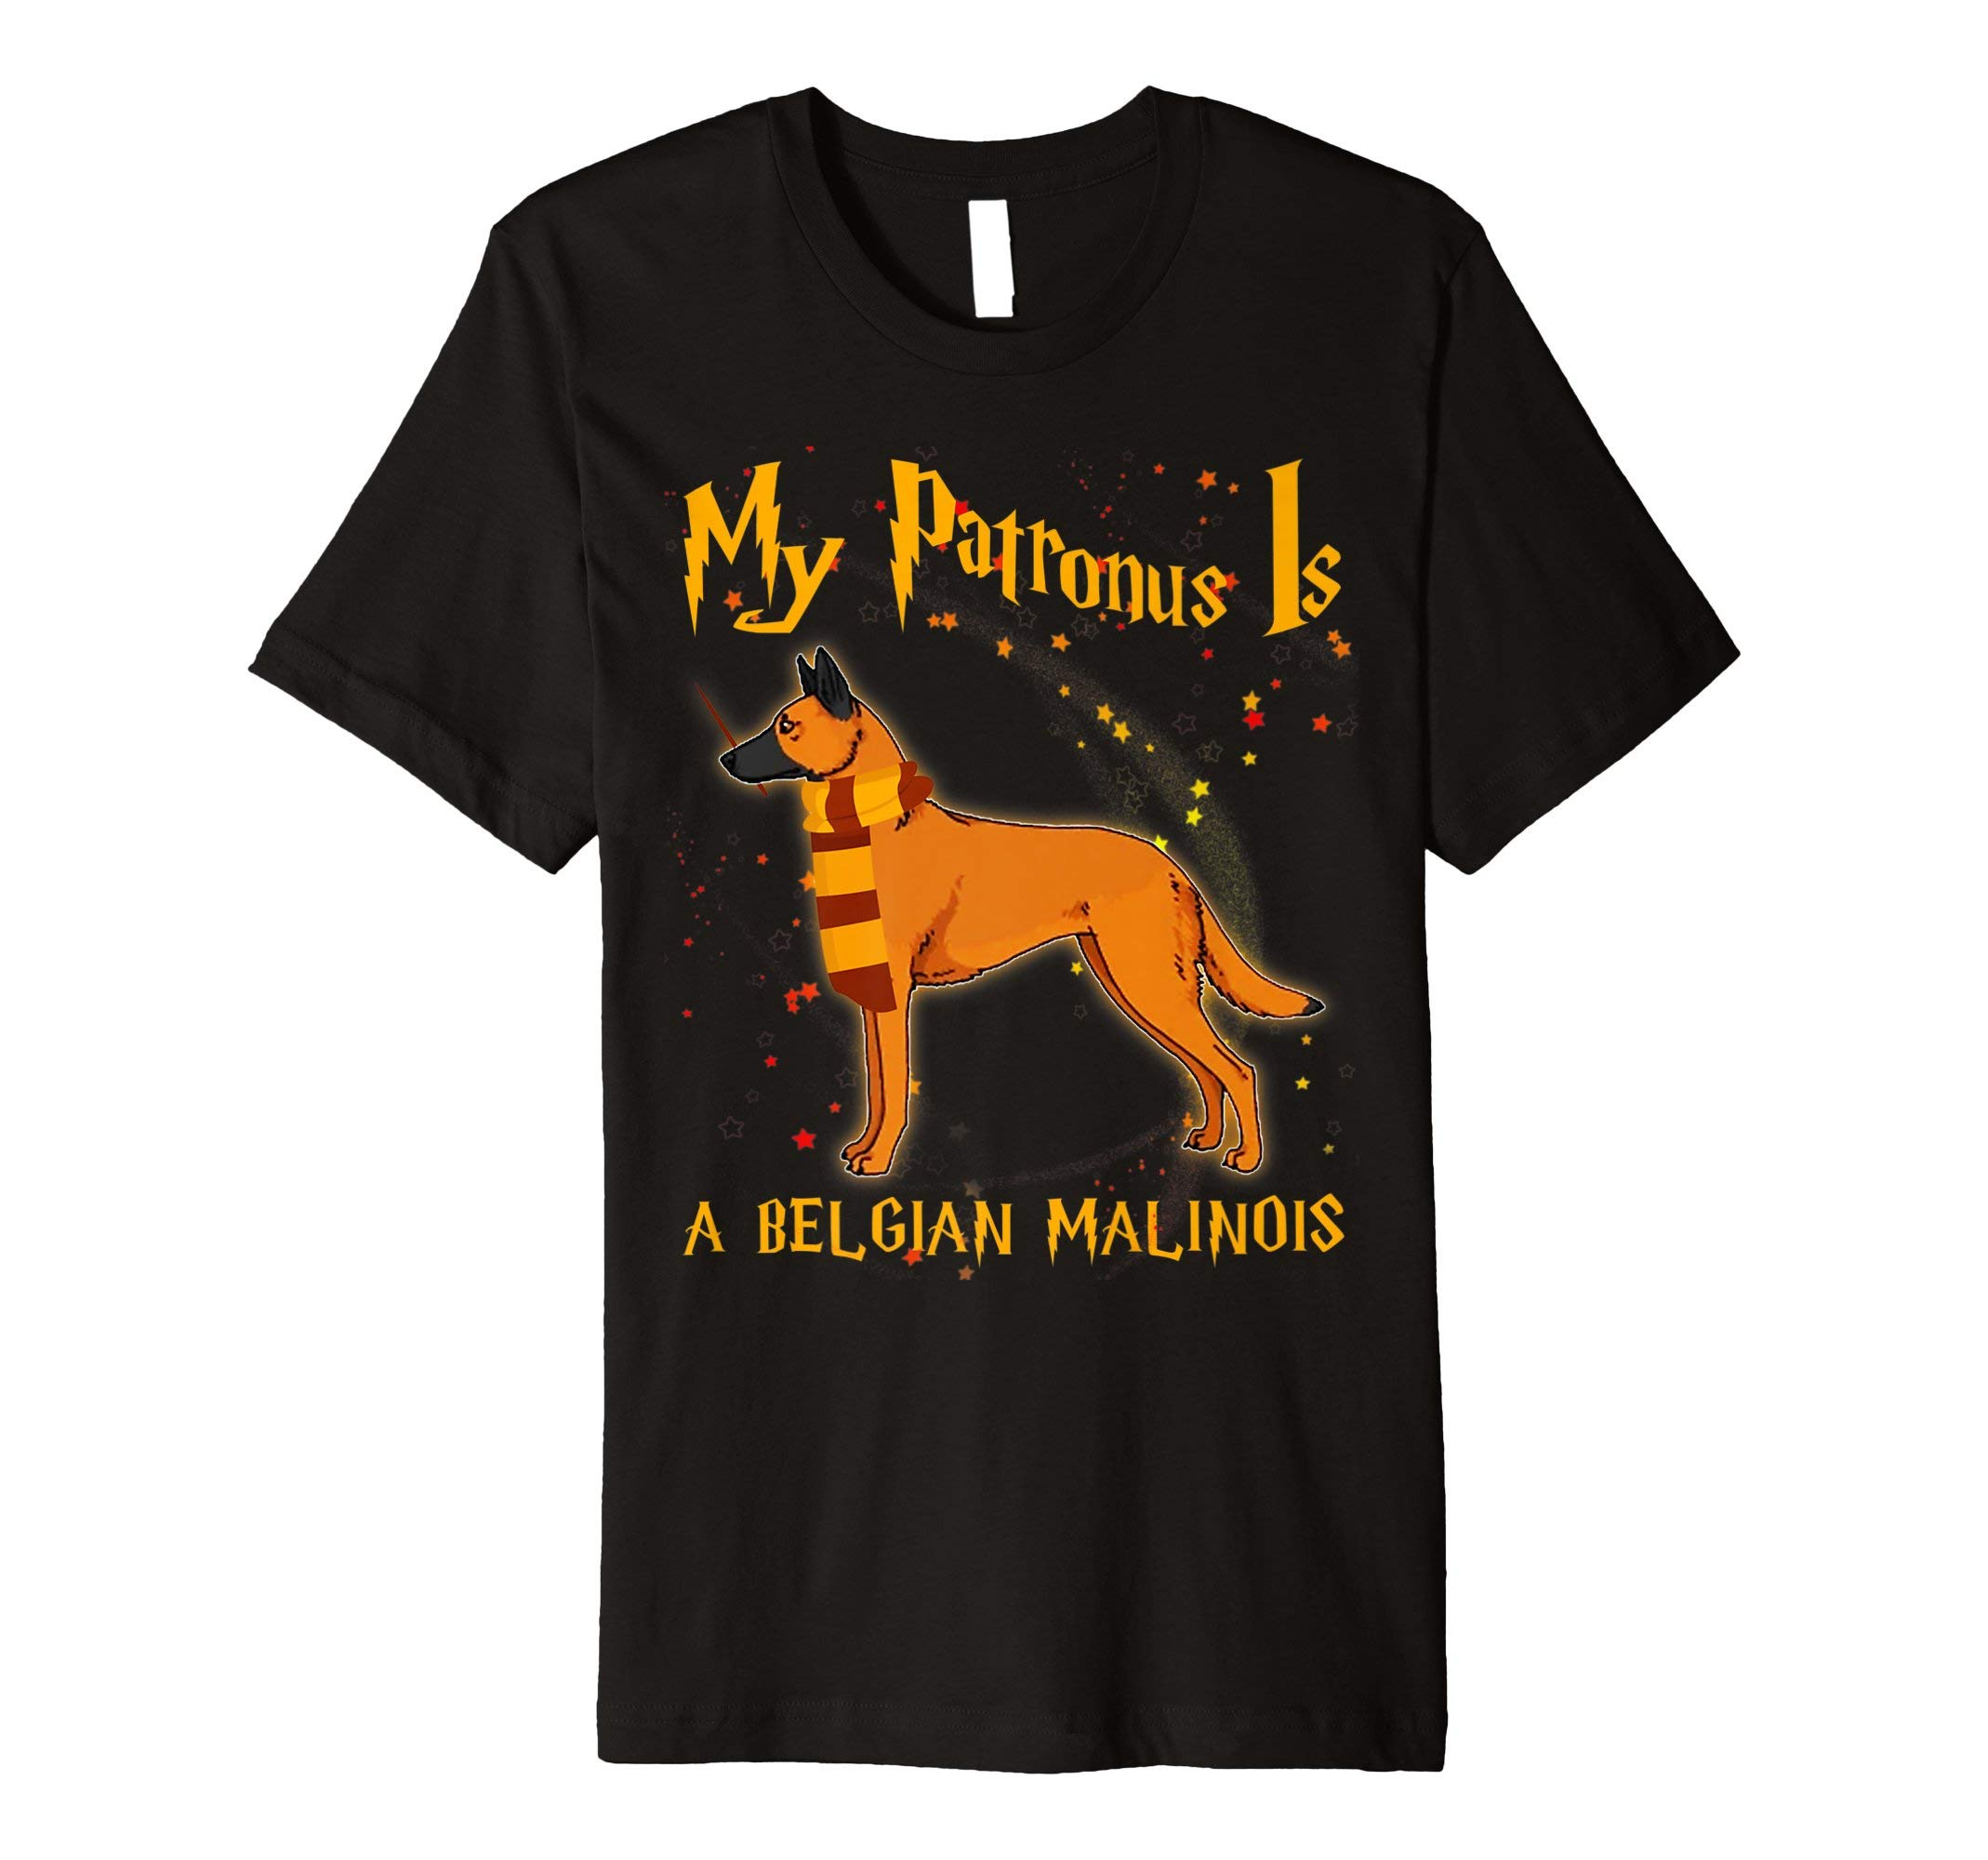 My patronus is BELGIAN MALINOIS – BELGIAN MALINOIS Dog Gift